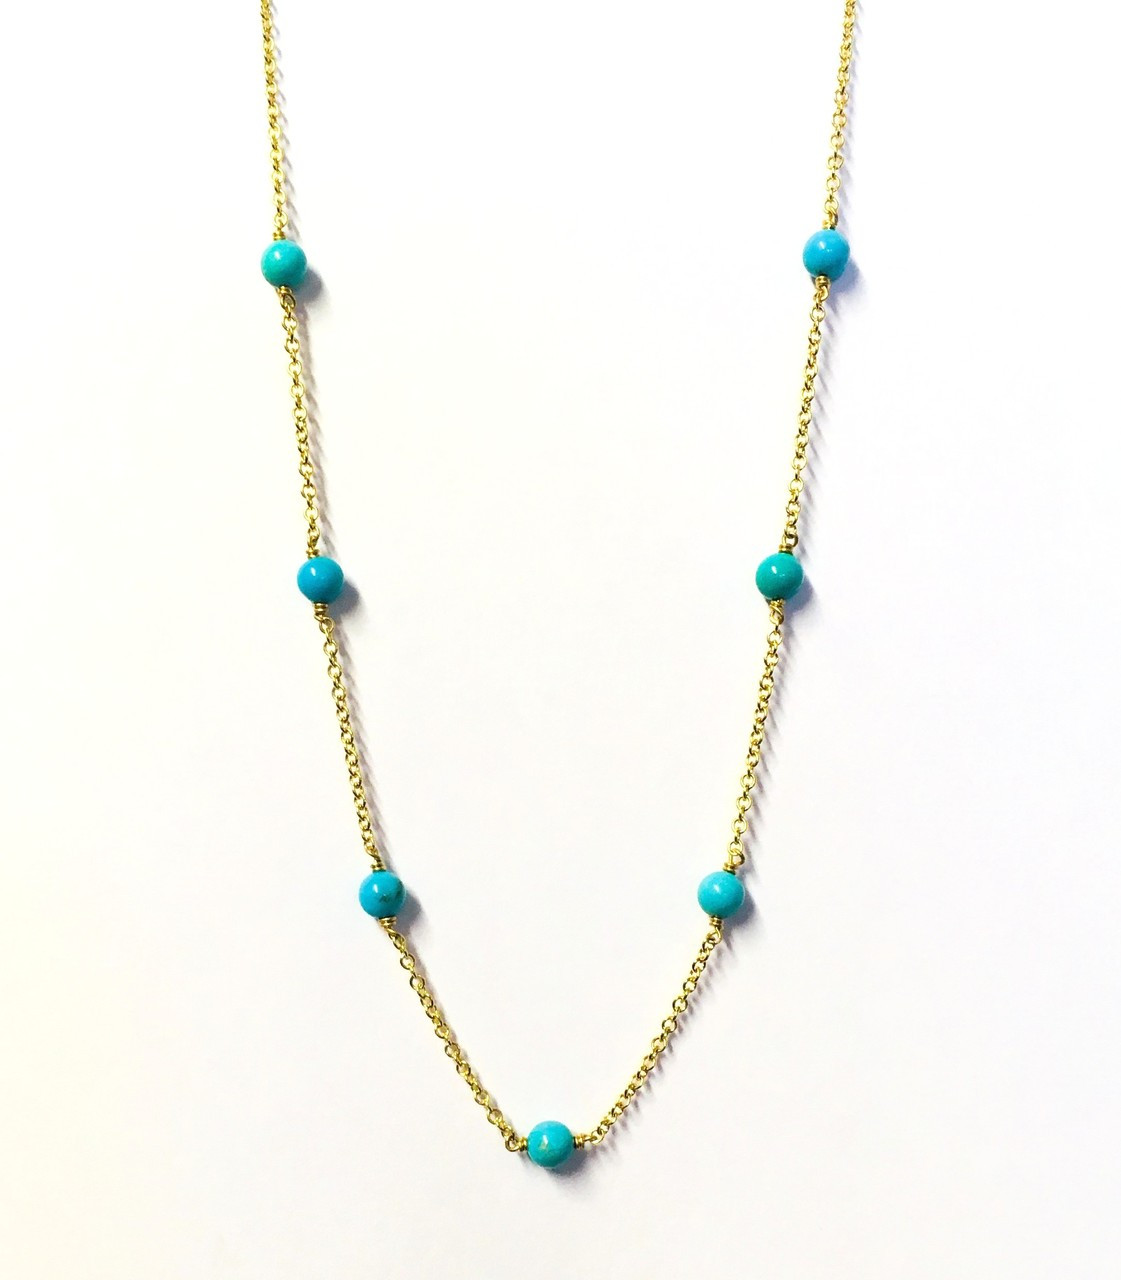 761ac01ad 9ct Yellow Gold & Turquoise Station Necklace - Gatwards Of Hitchin